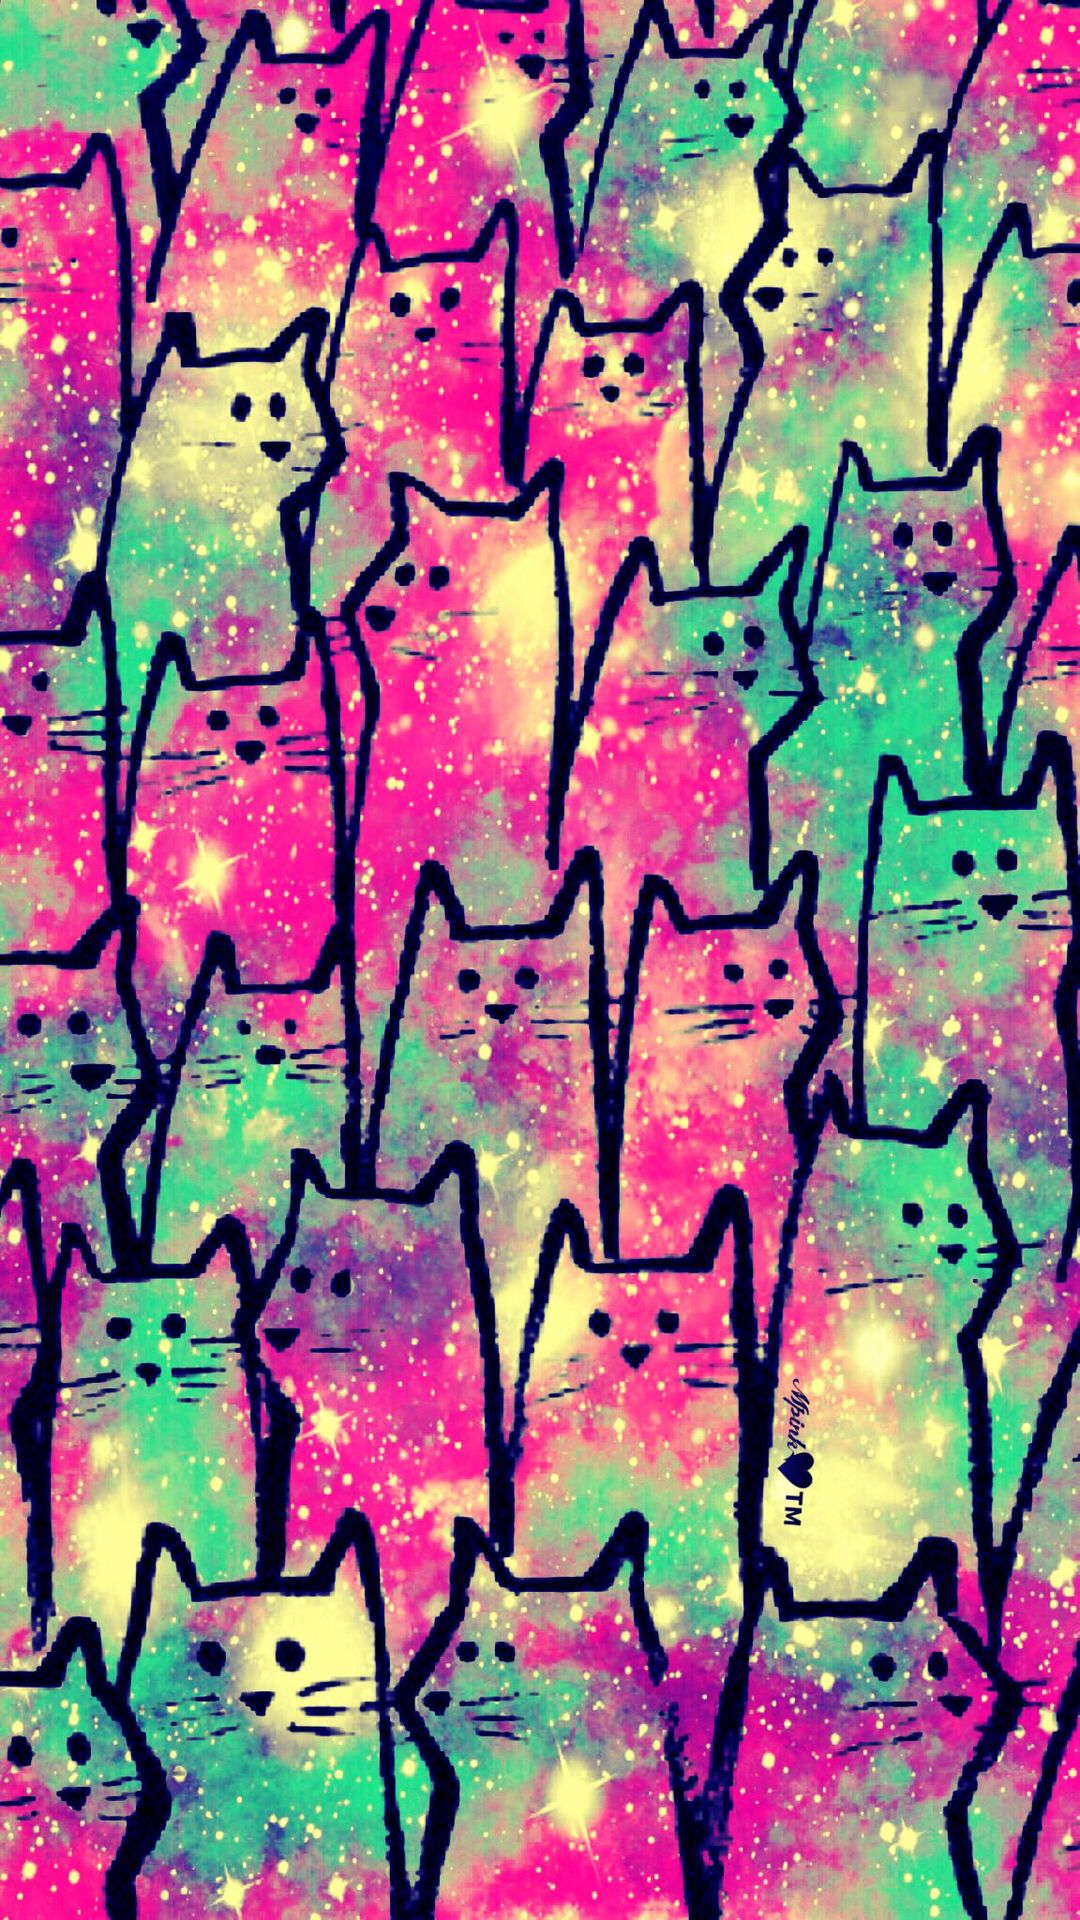 Kitty Cat Party Galaxy Wallpaper androidwallpaper